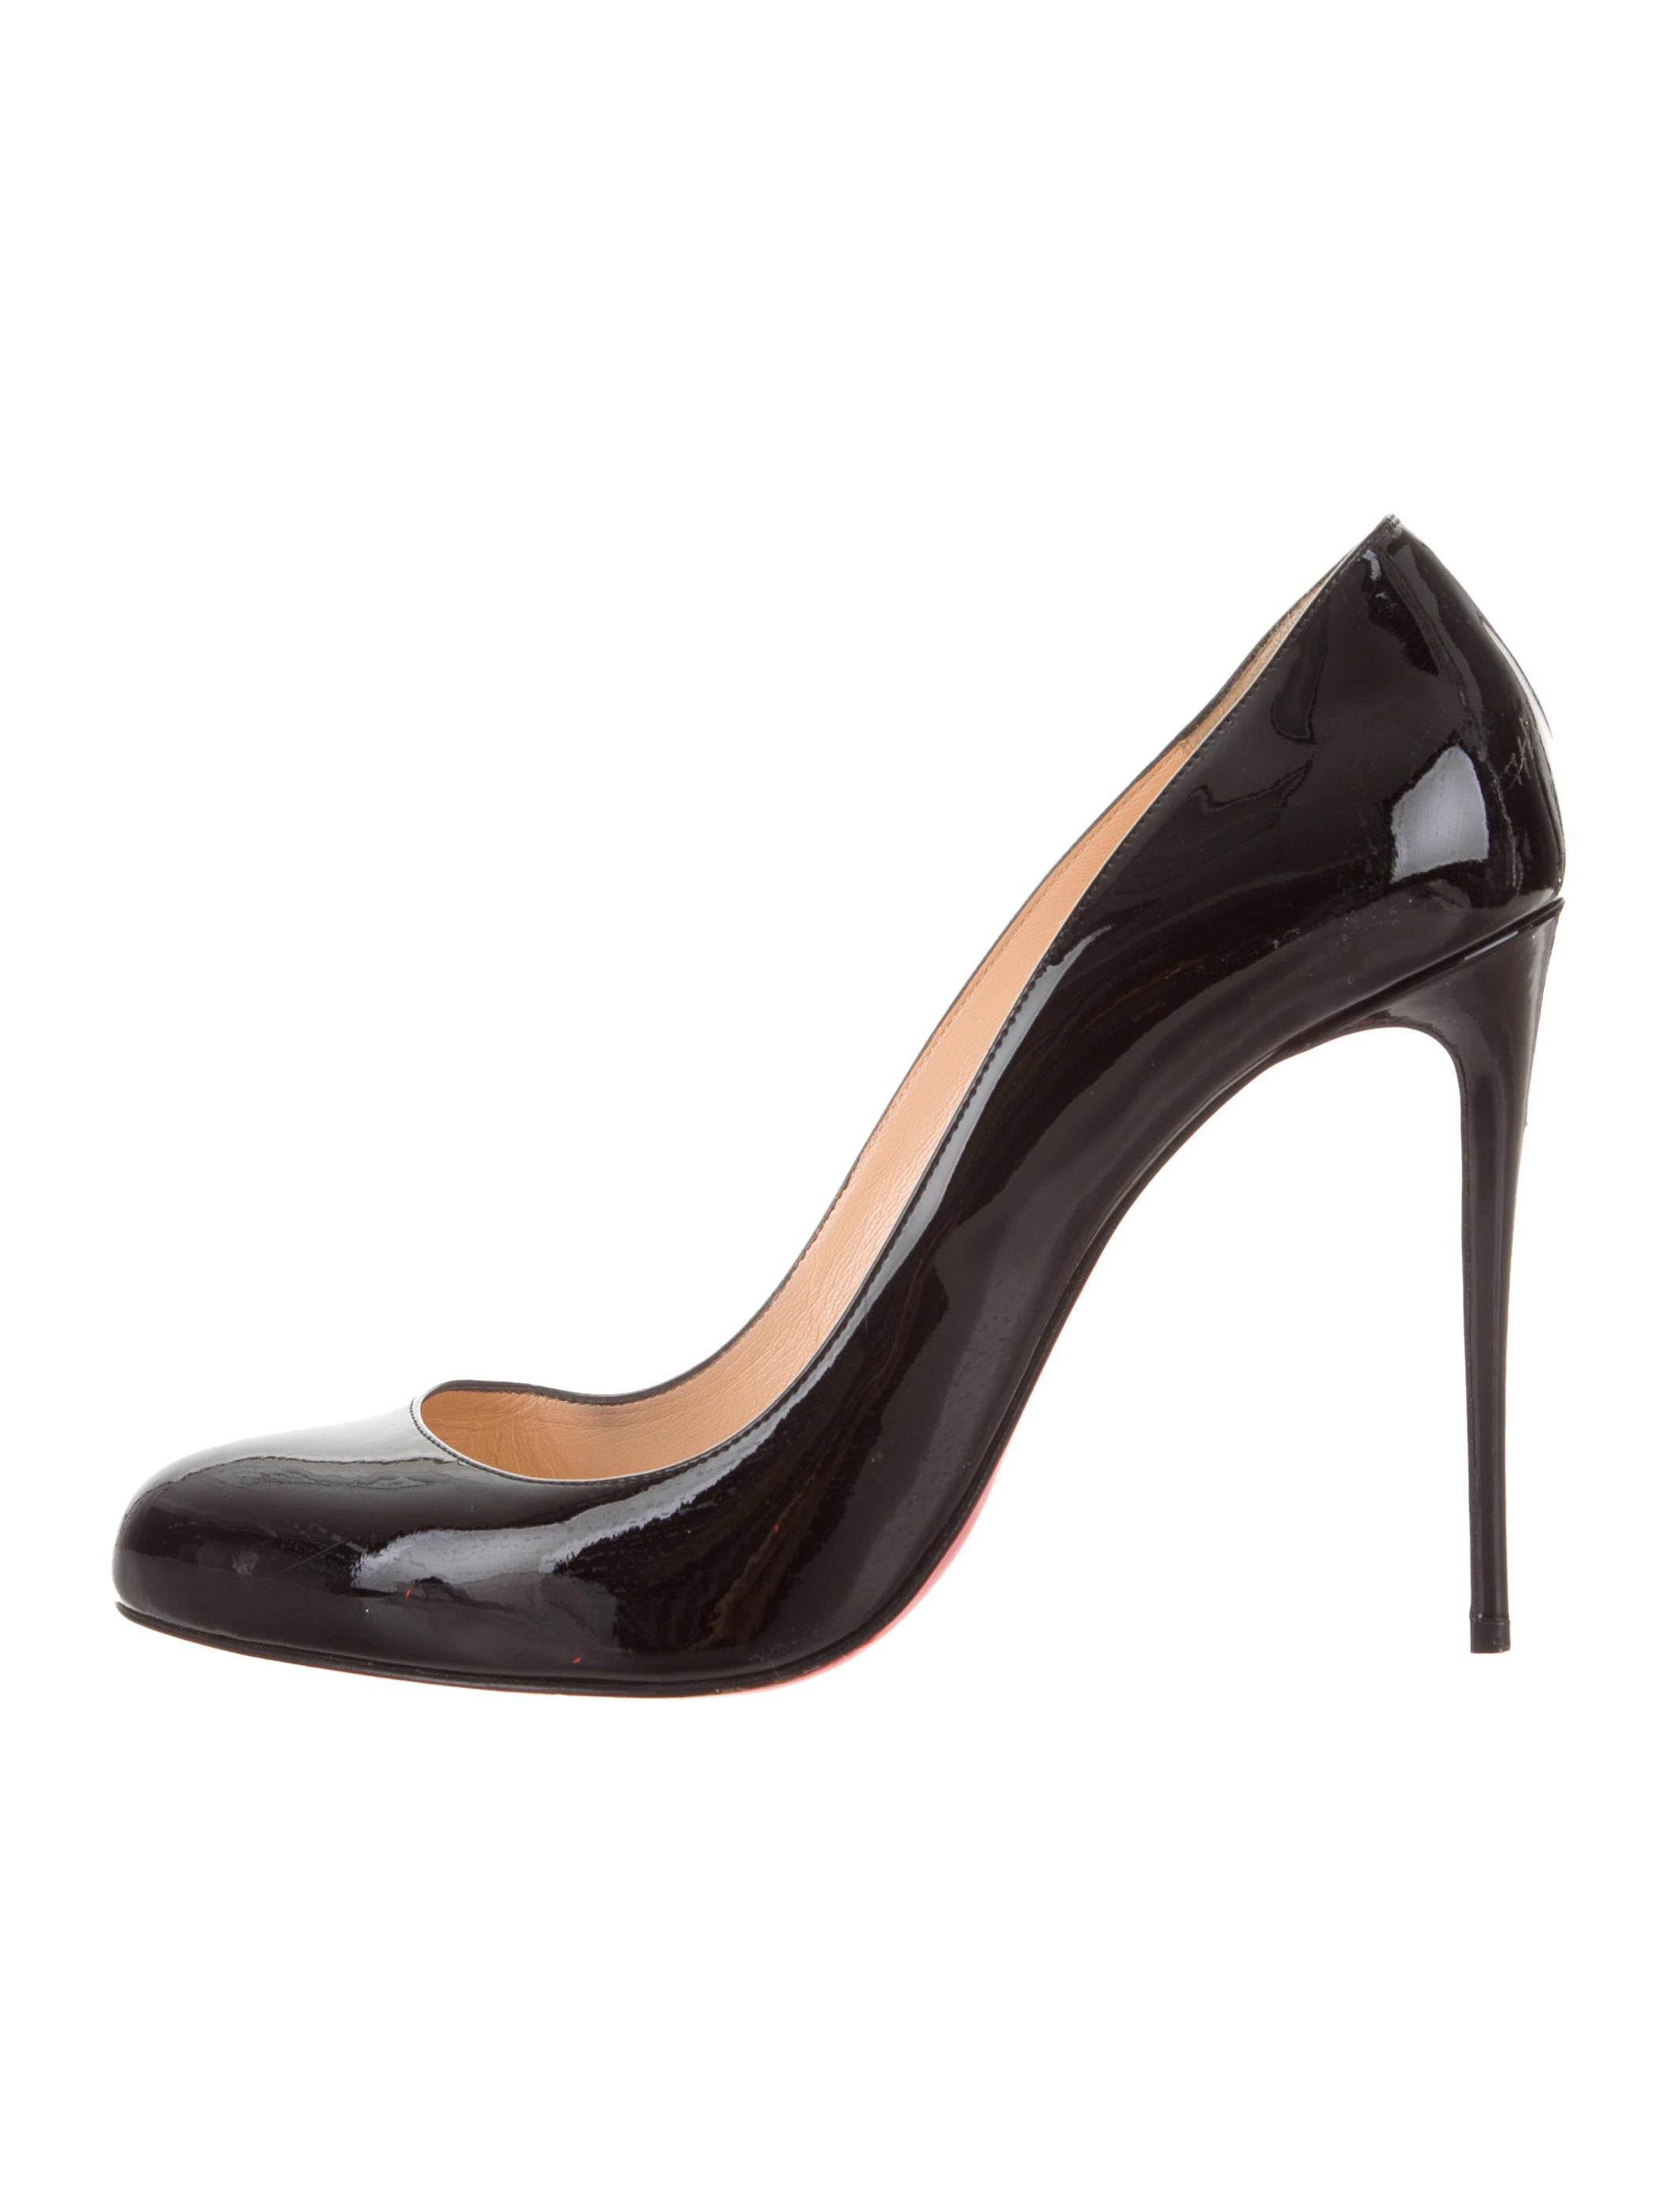 check out 0245b 3af49 Christian Louboutin Patent Leather Round-Toe Pumps